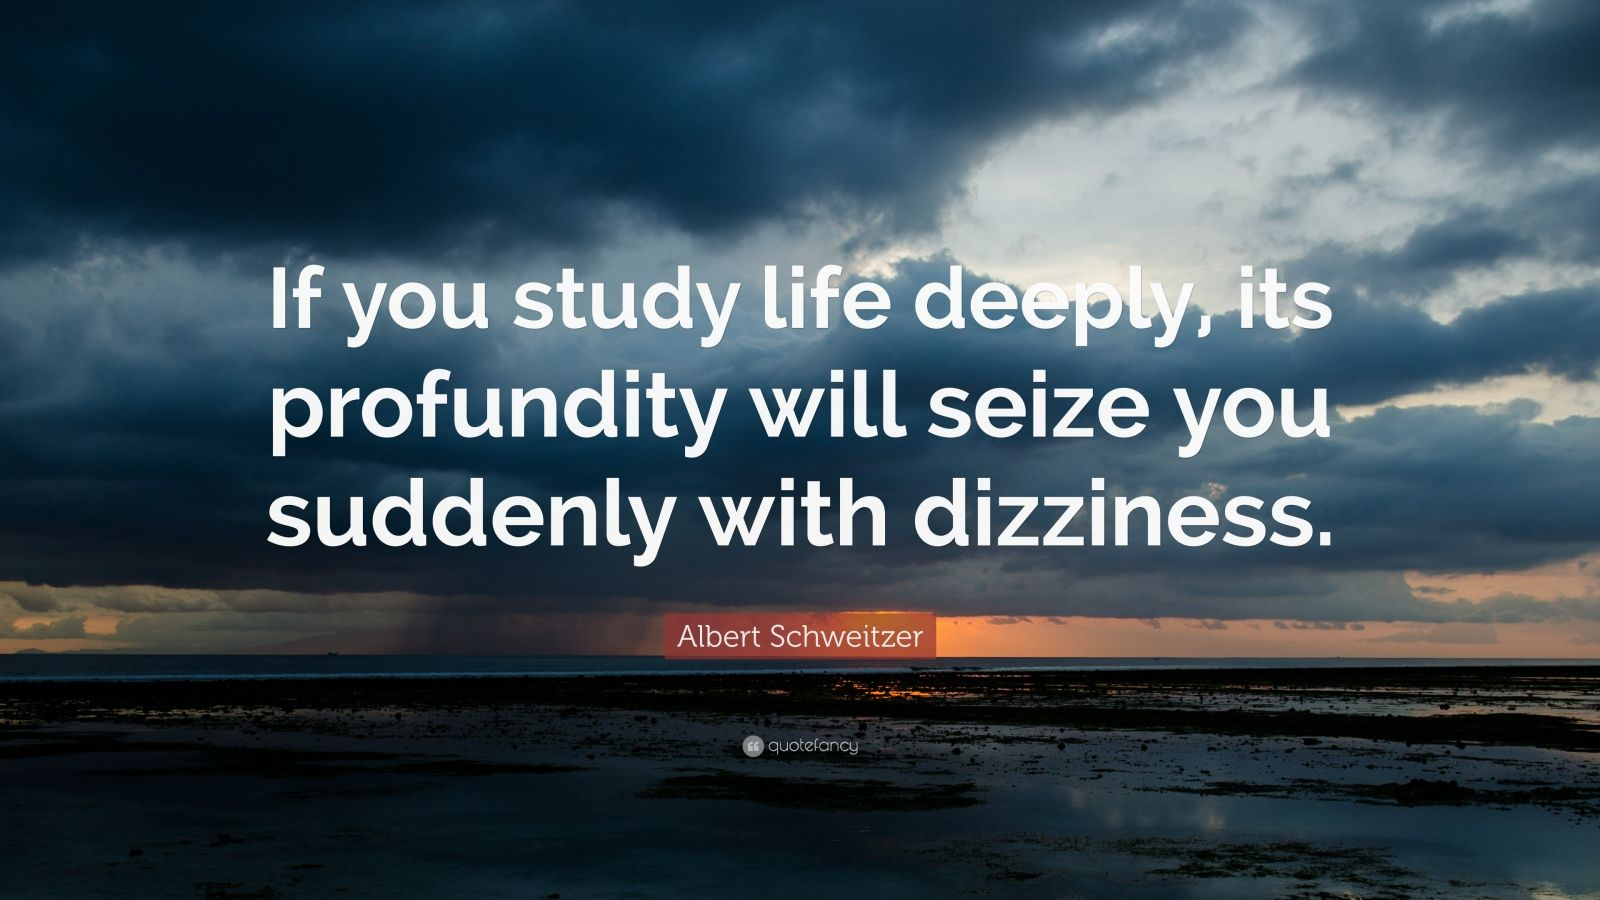 """Albert Schweitzer Quote: """"If you study life deeply, its profundity will seize you suddenly with dizziness."""""""